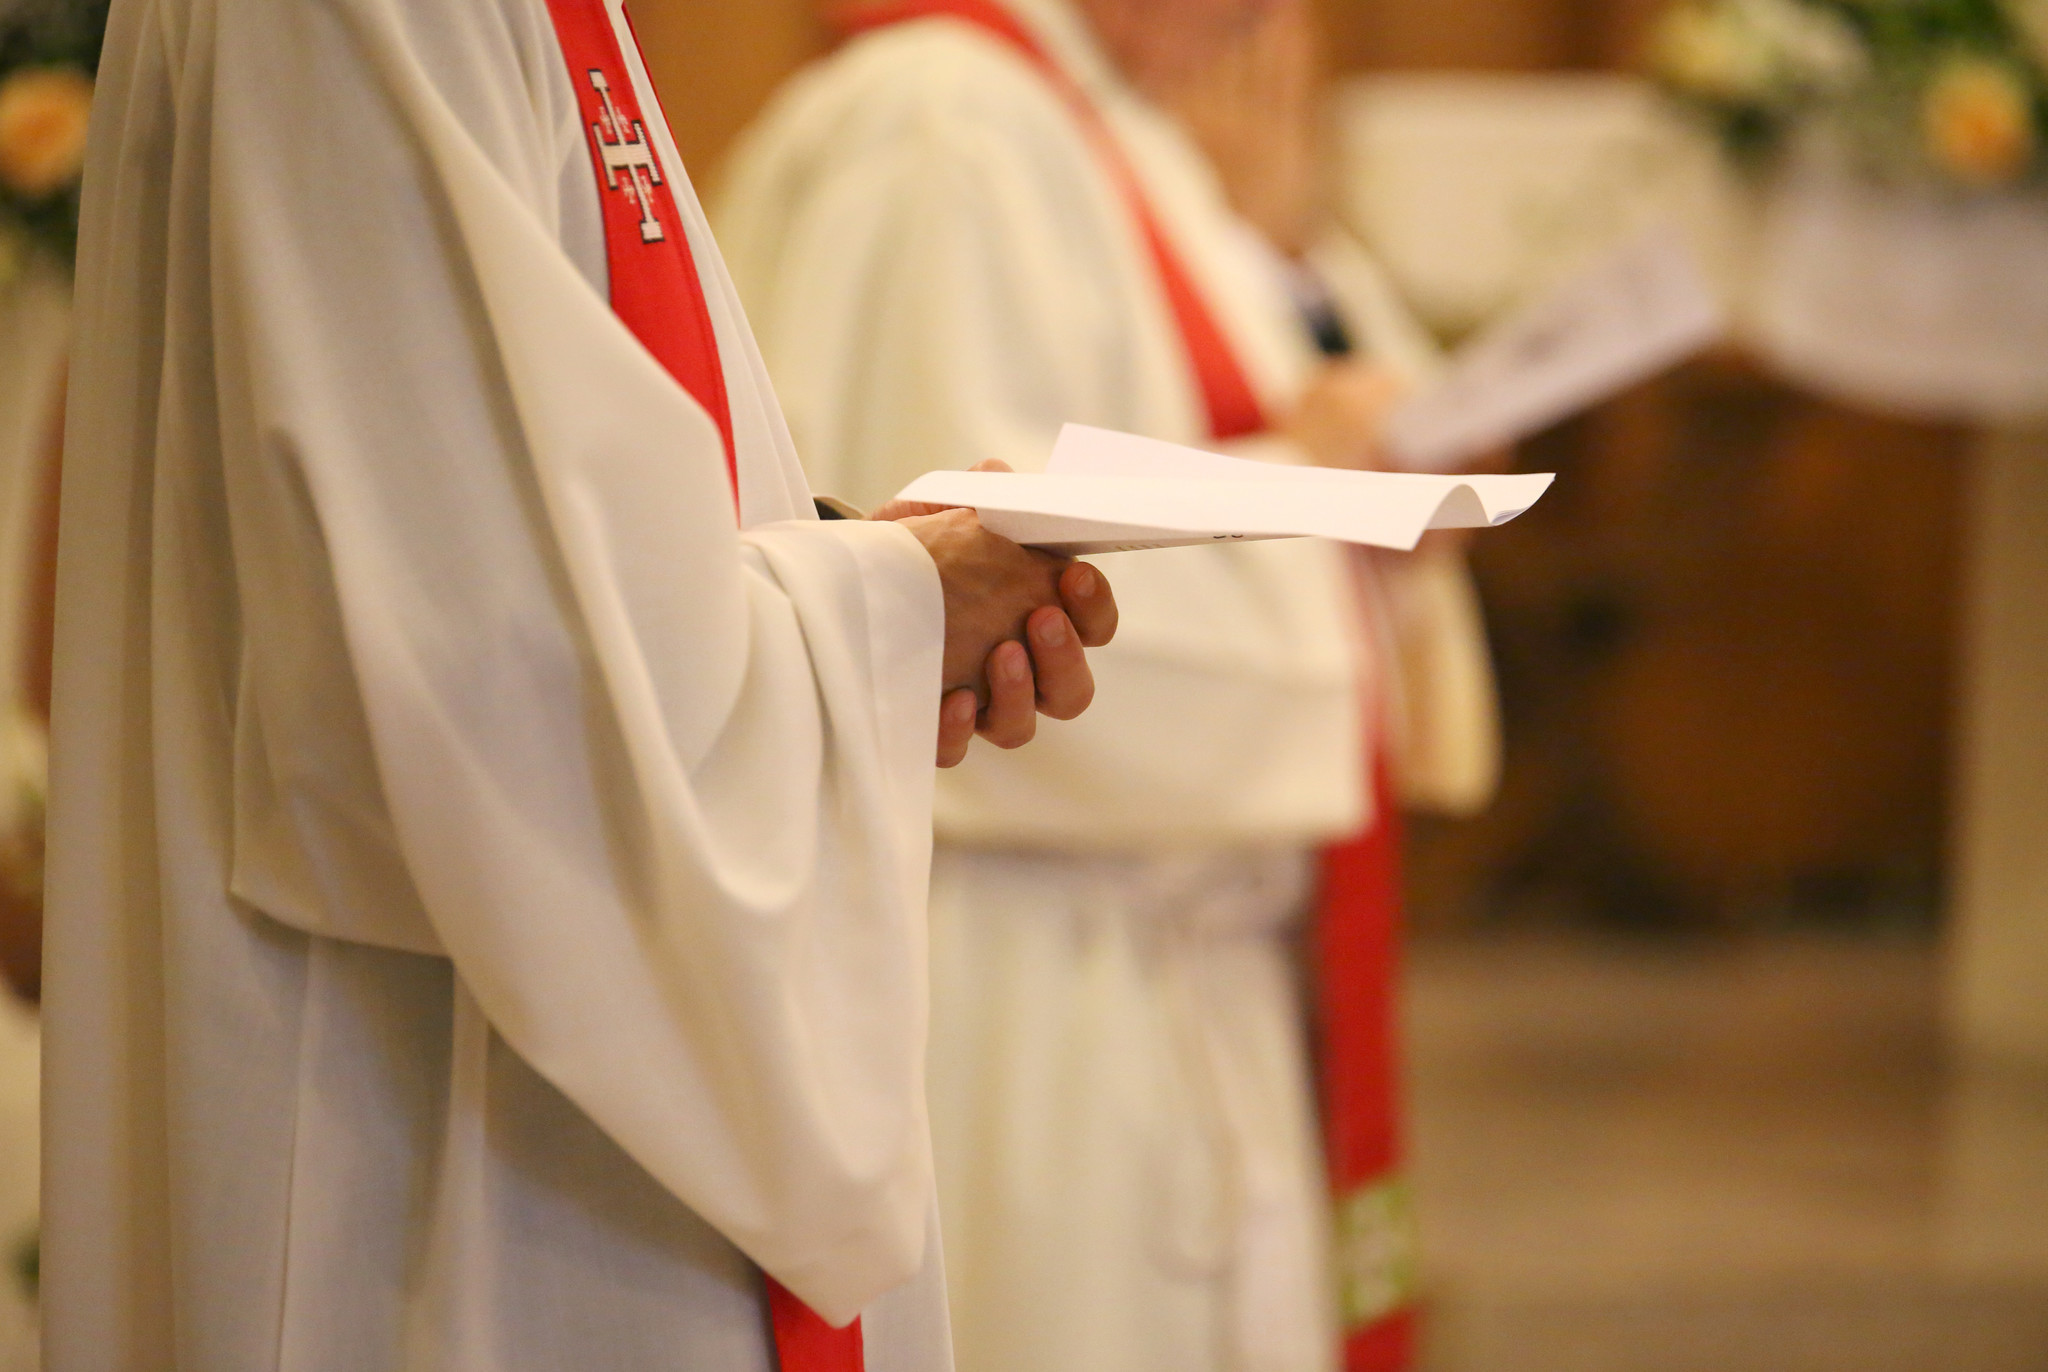 Pining for the Latin Mass: Reflecting on major changes to the Catholic liturgy, 50 years later